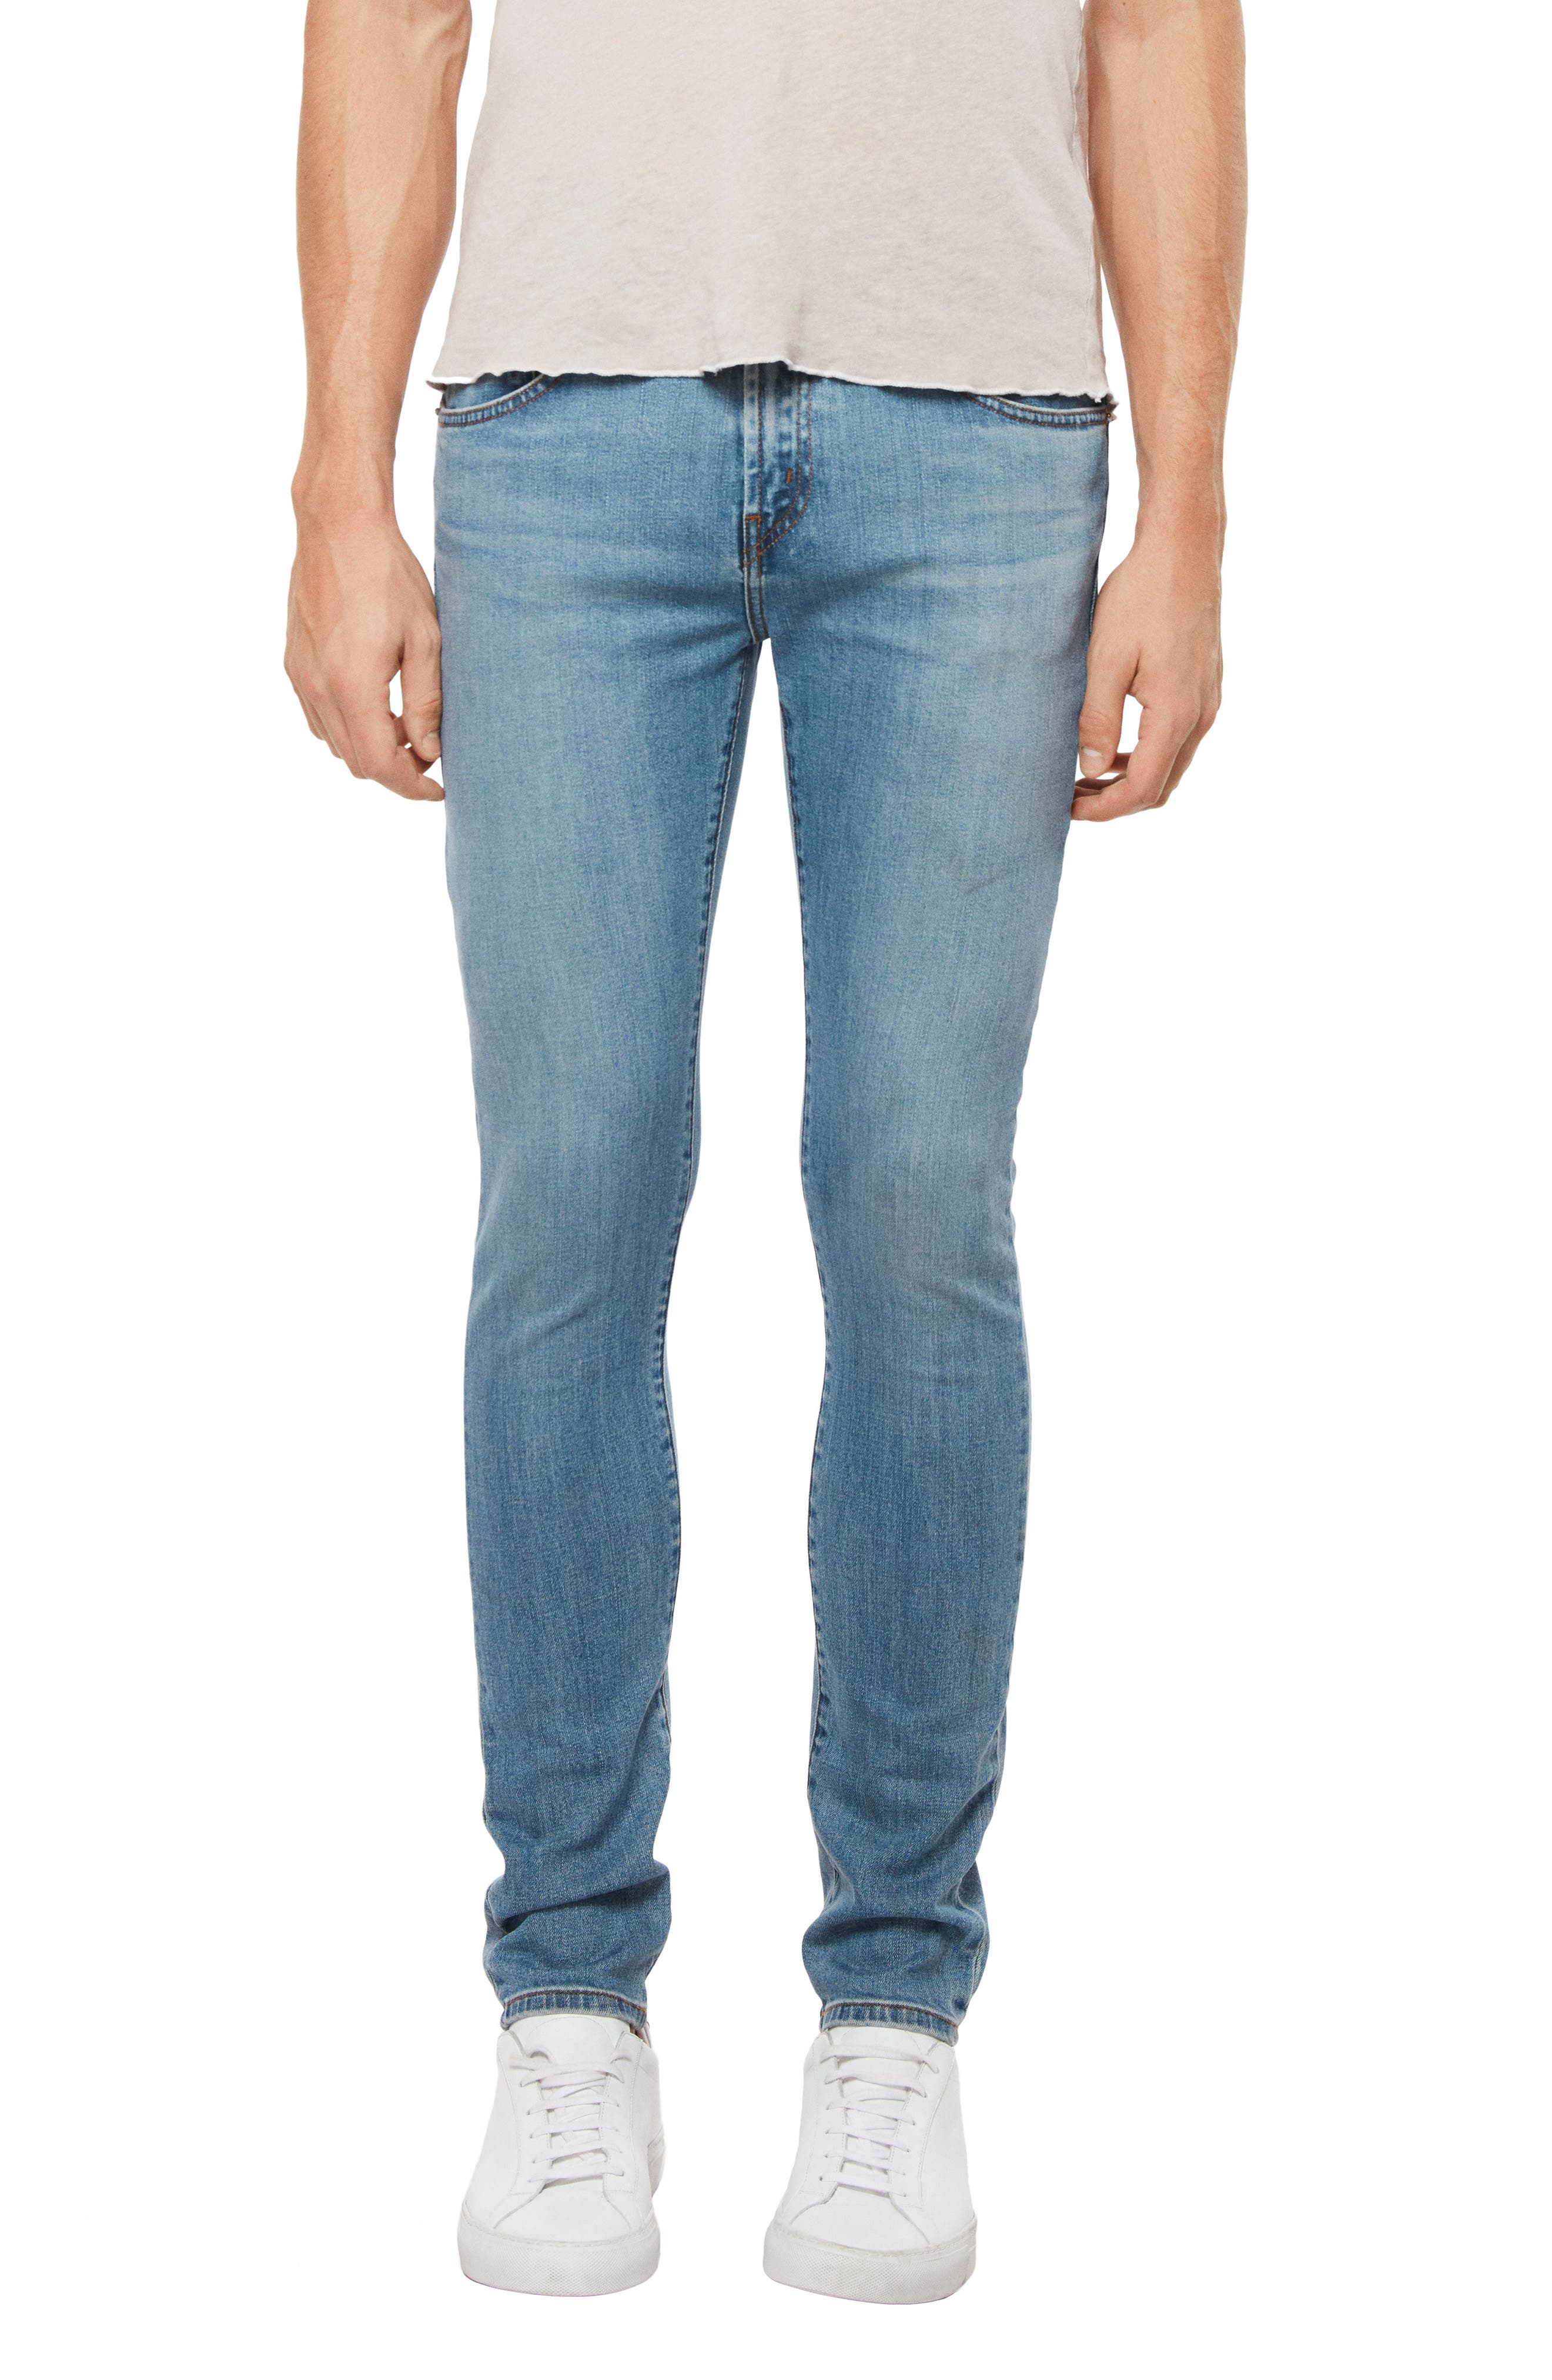 Skinny Fit Jeans,                         Main,                         color, 409